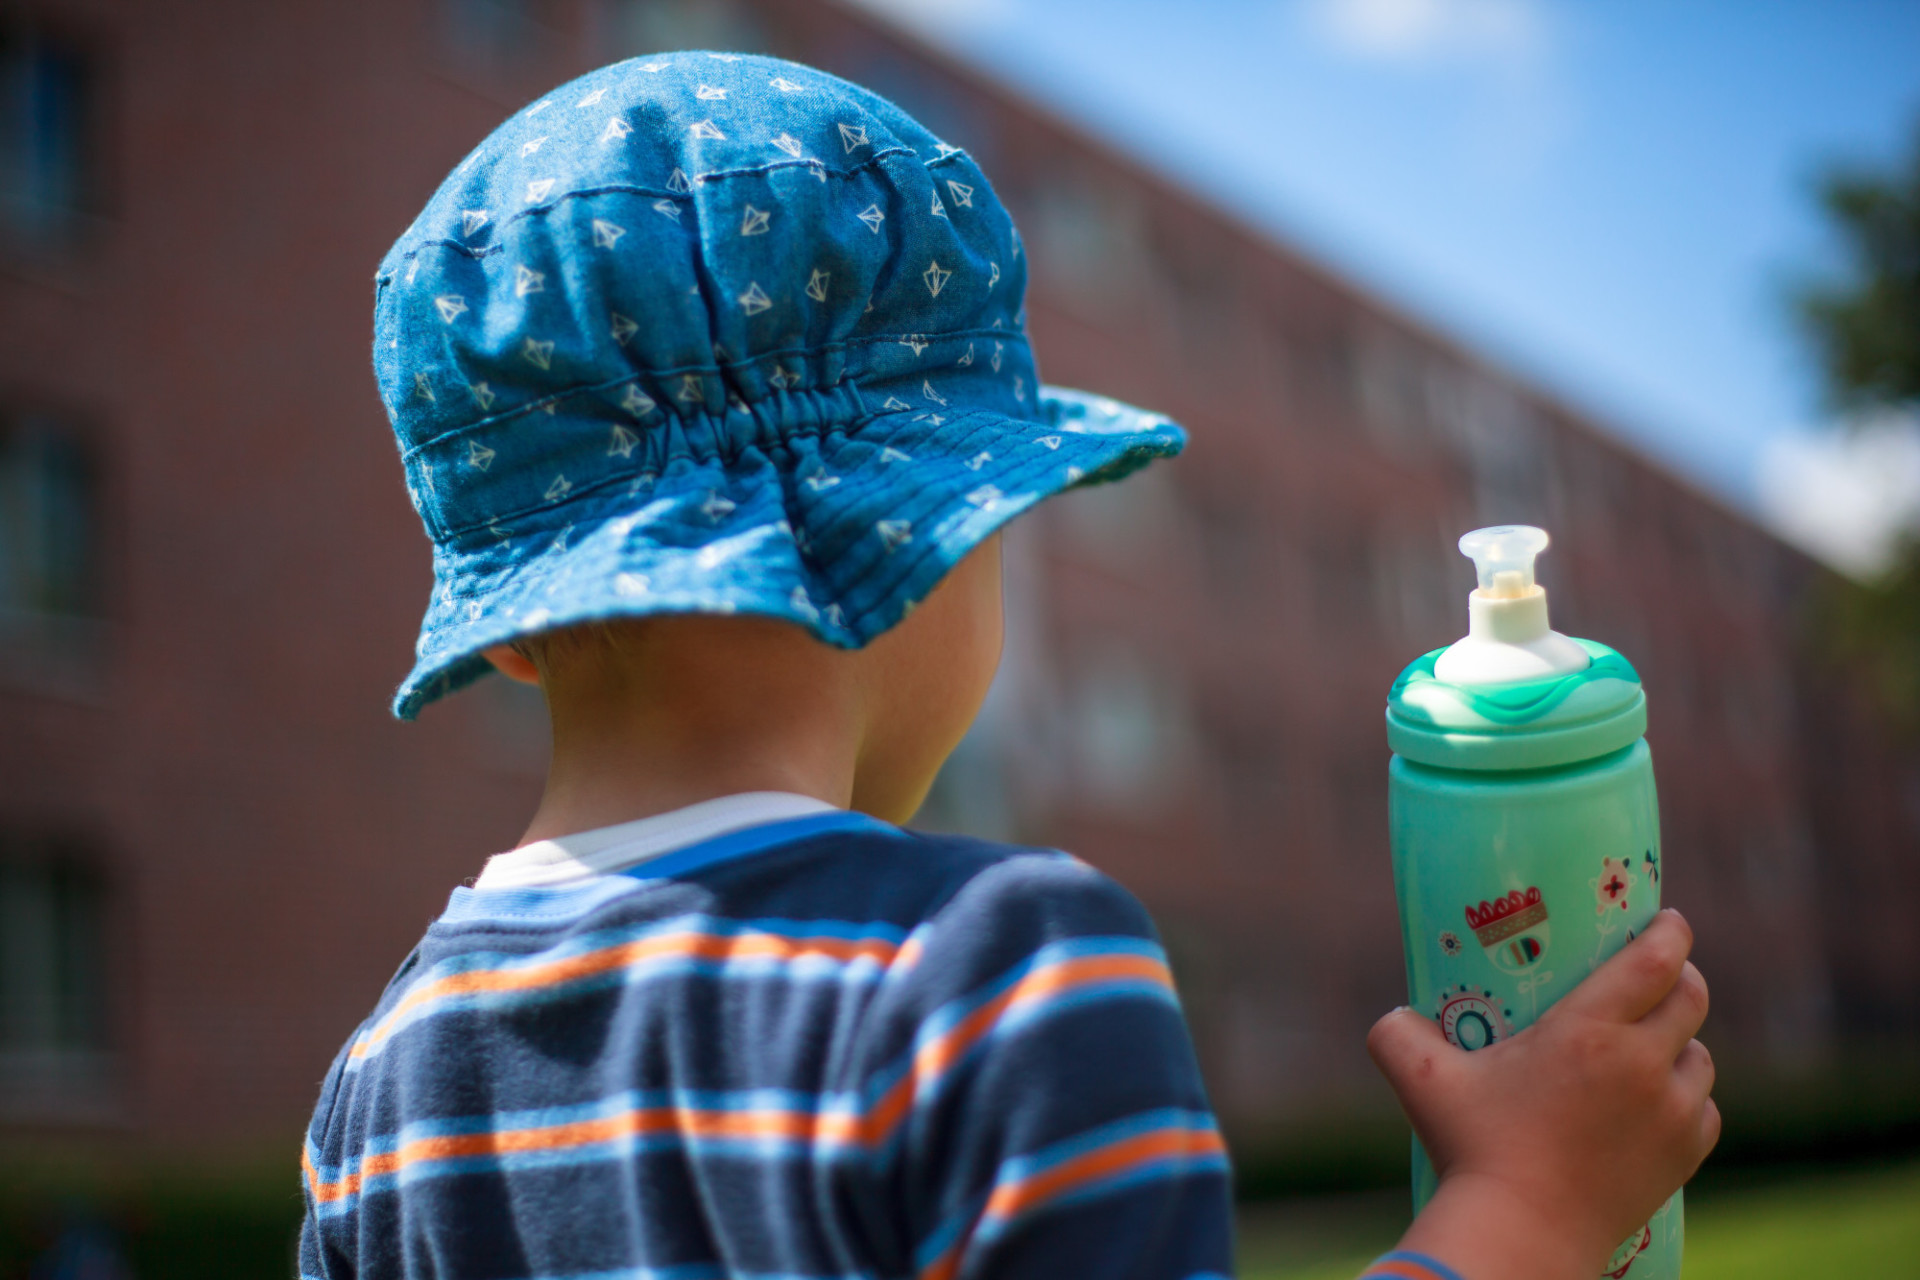 Toddler with plastic water bottle